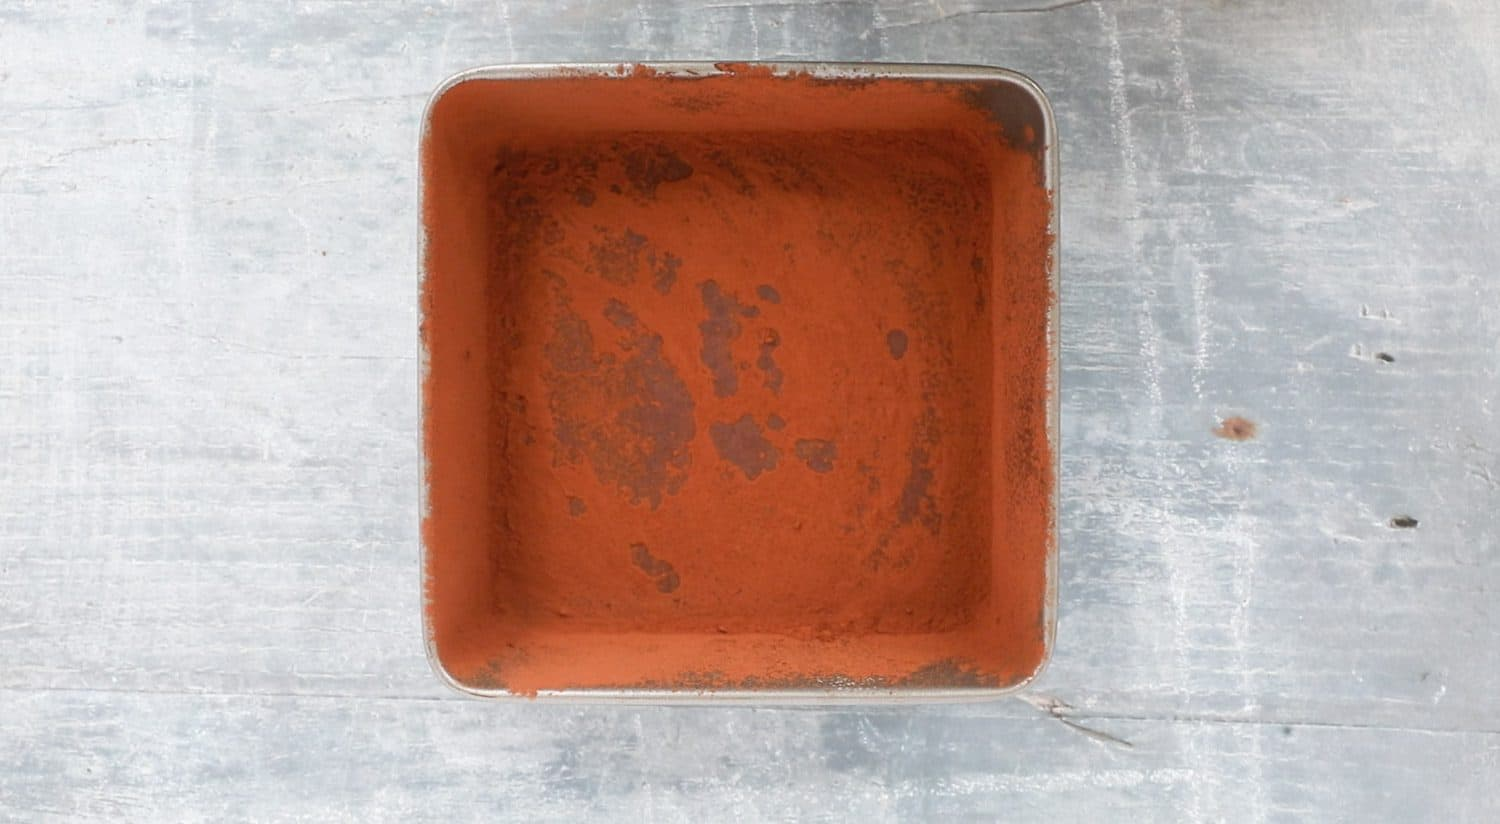 A baking pan with cocoa